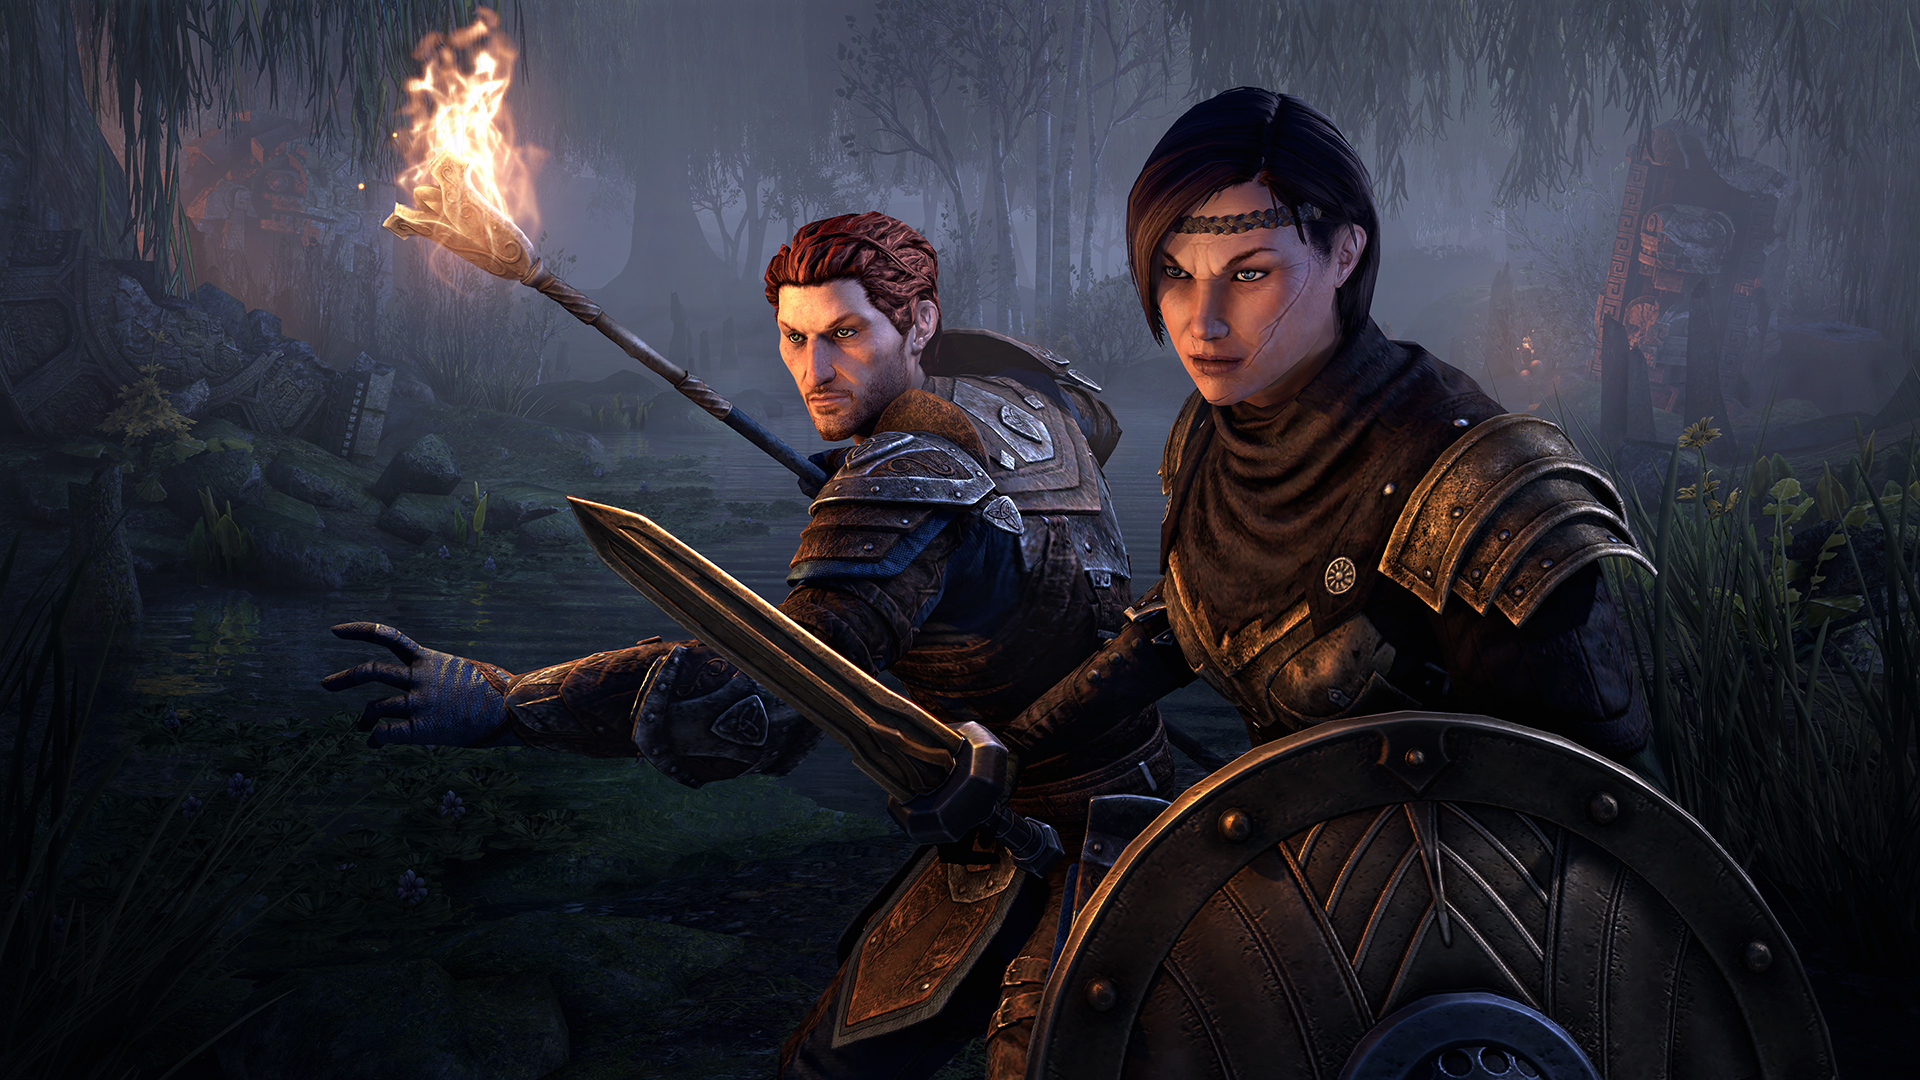 TESO - Goals from Oblivion: The next chapter of the role-playing game will be released in June